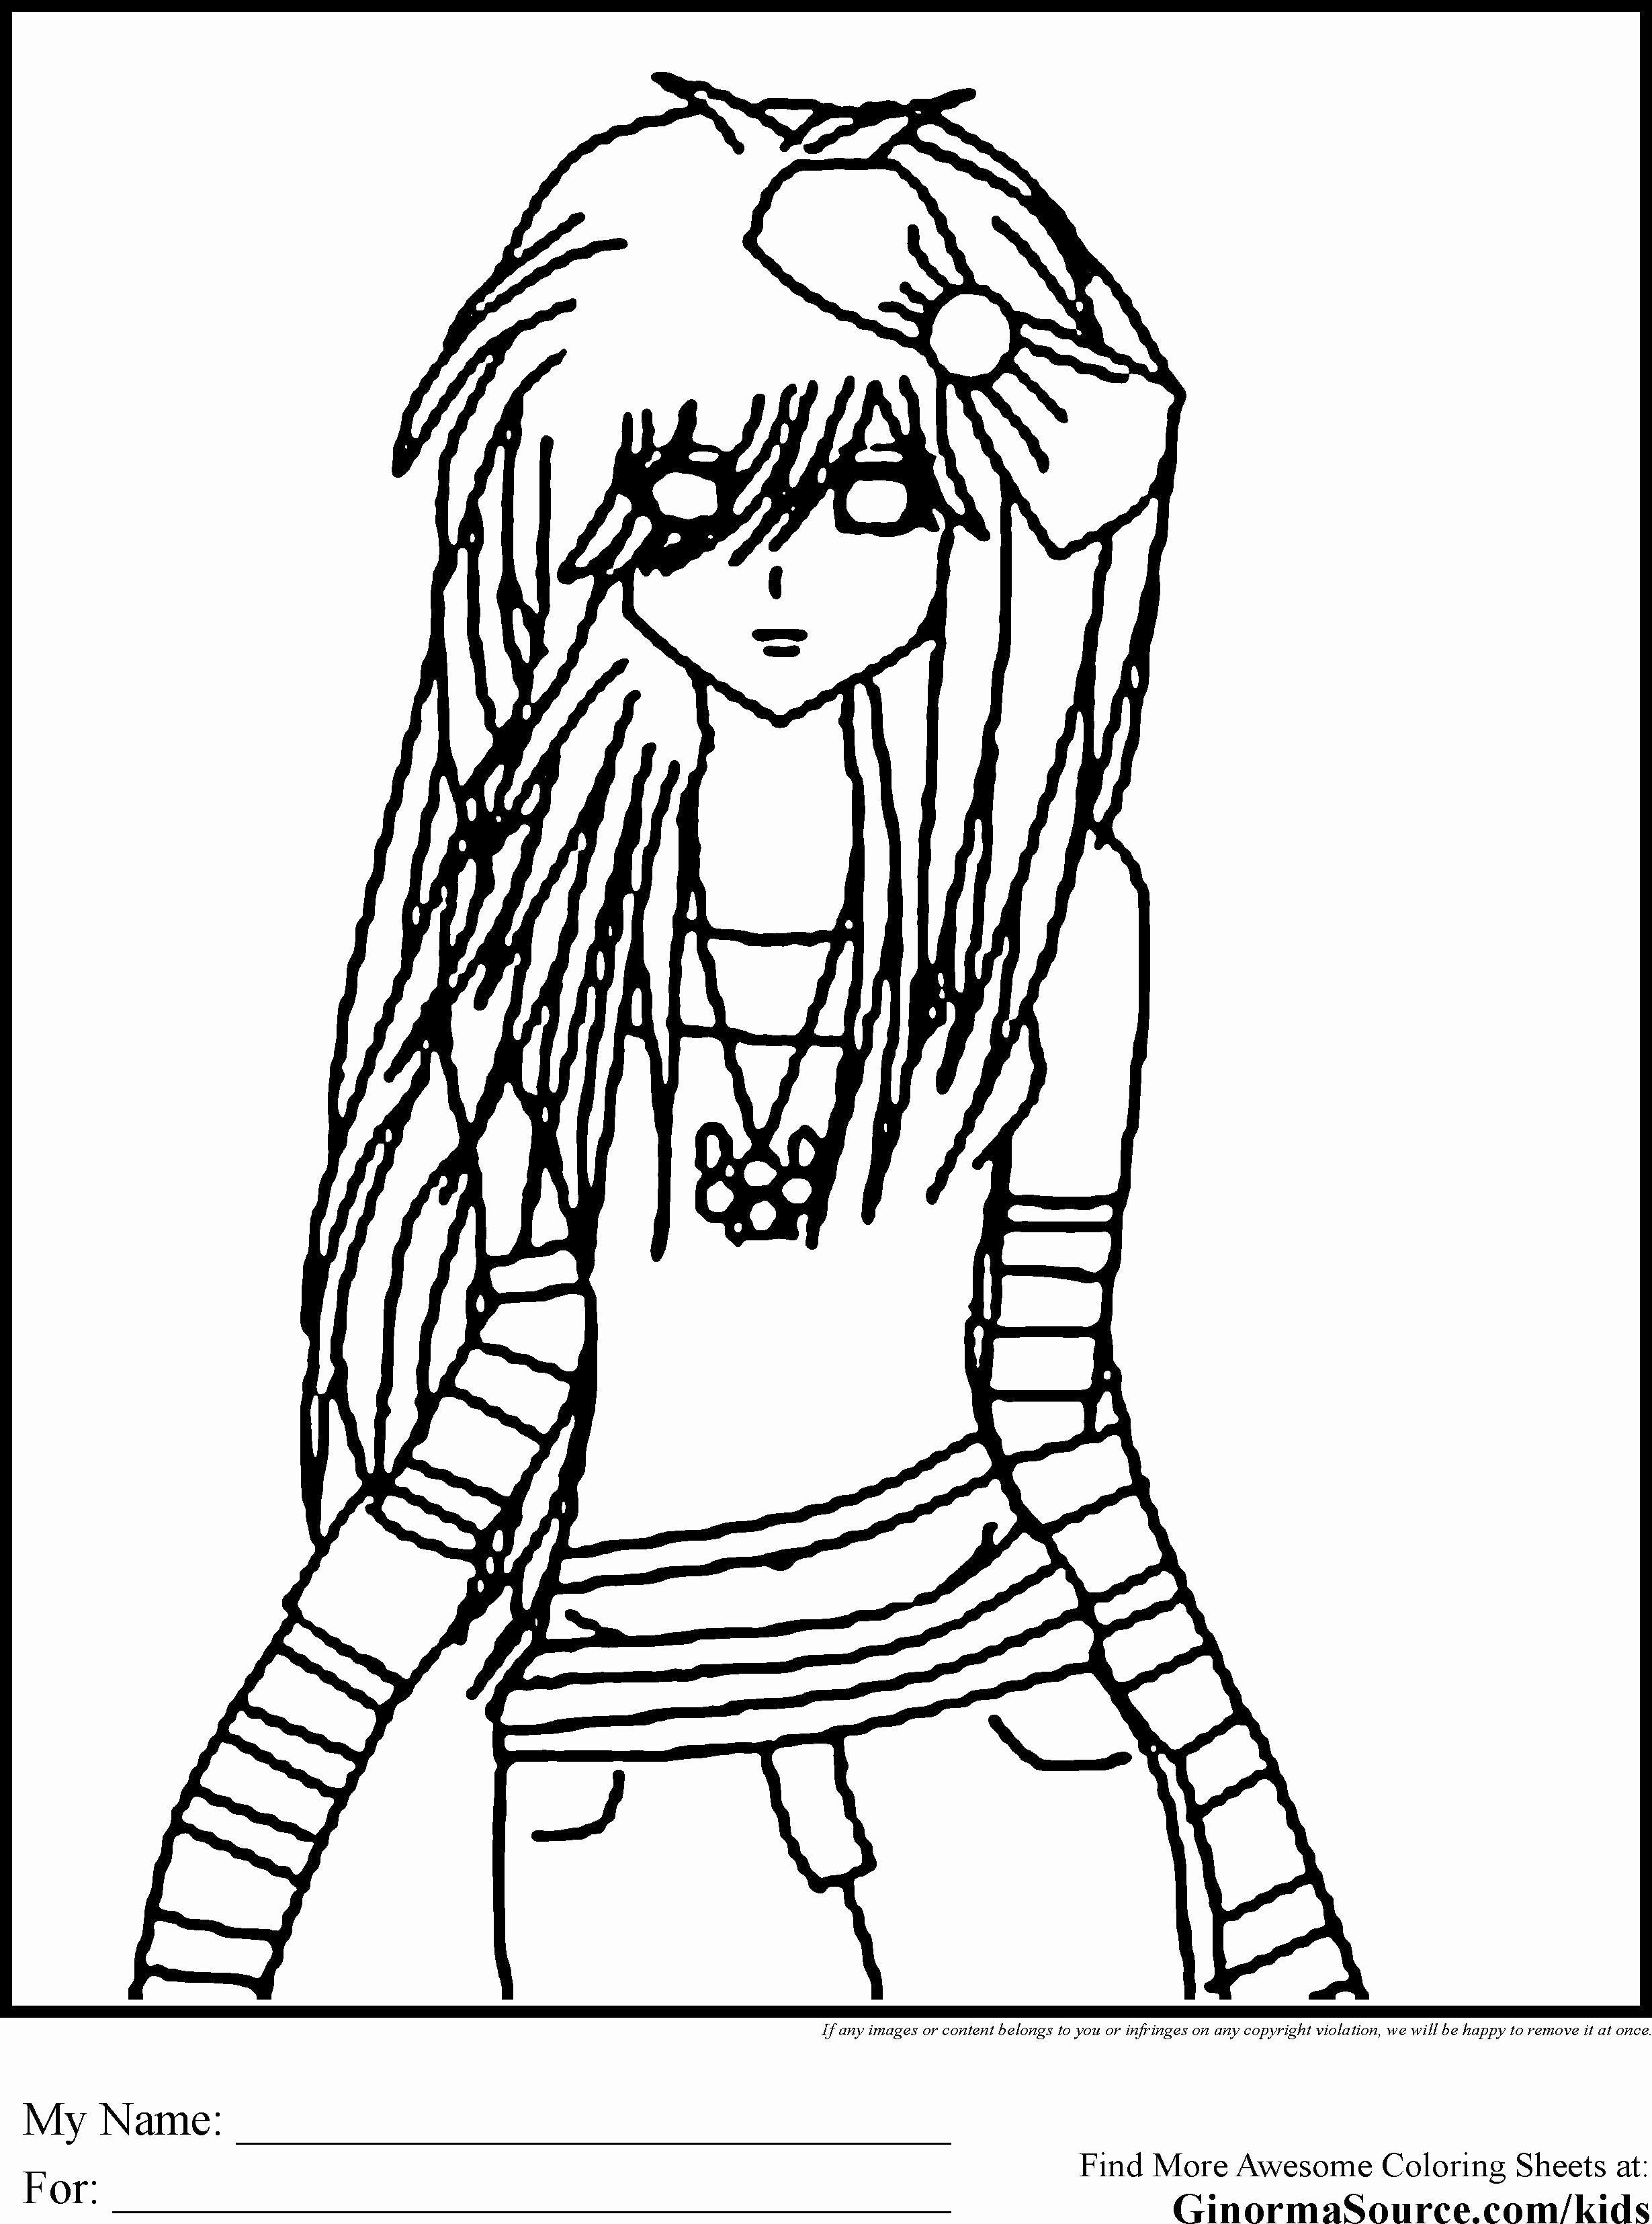 Its A Girl Coloring Pages Elegant Coloring Sheets For Girls New